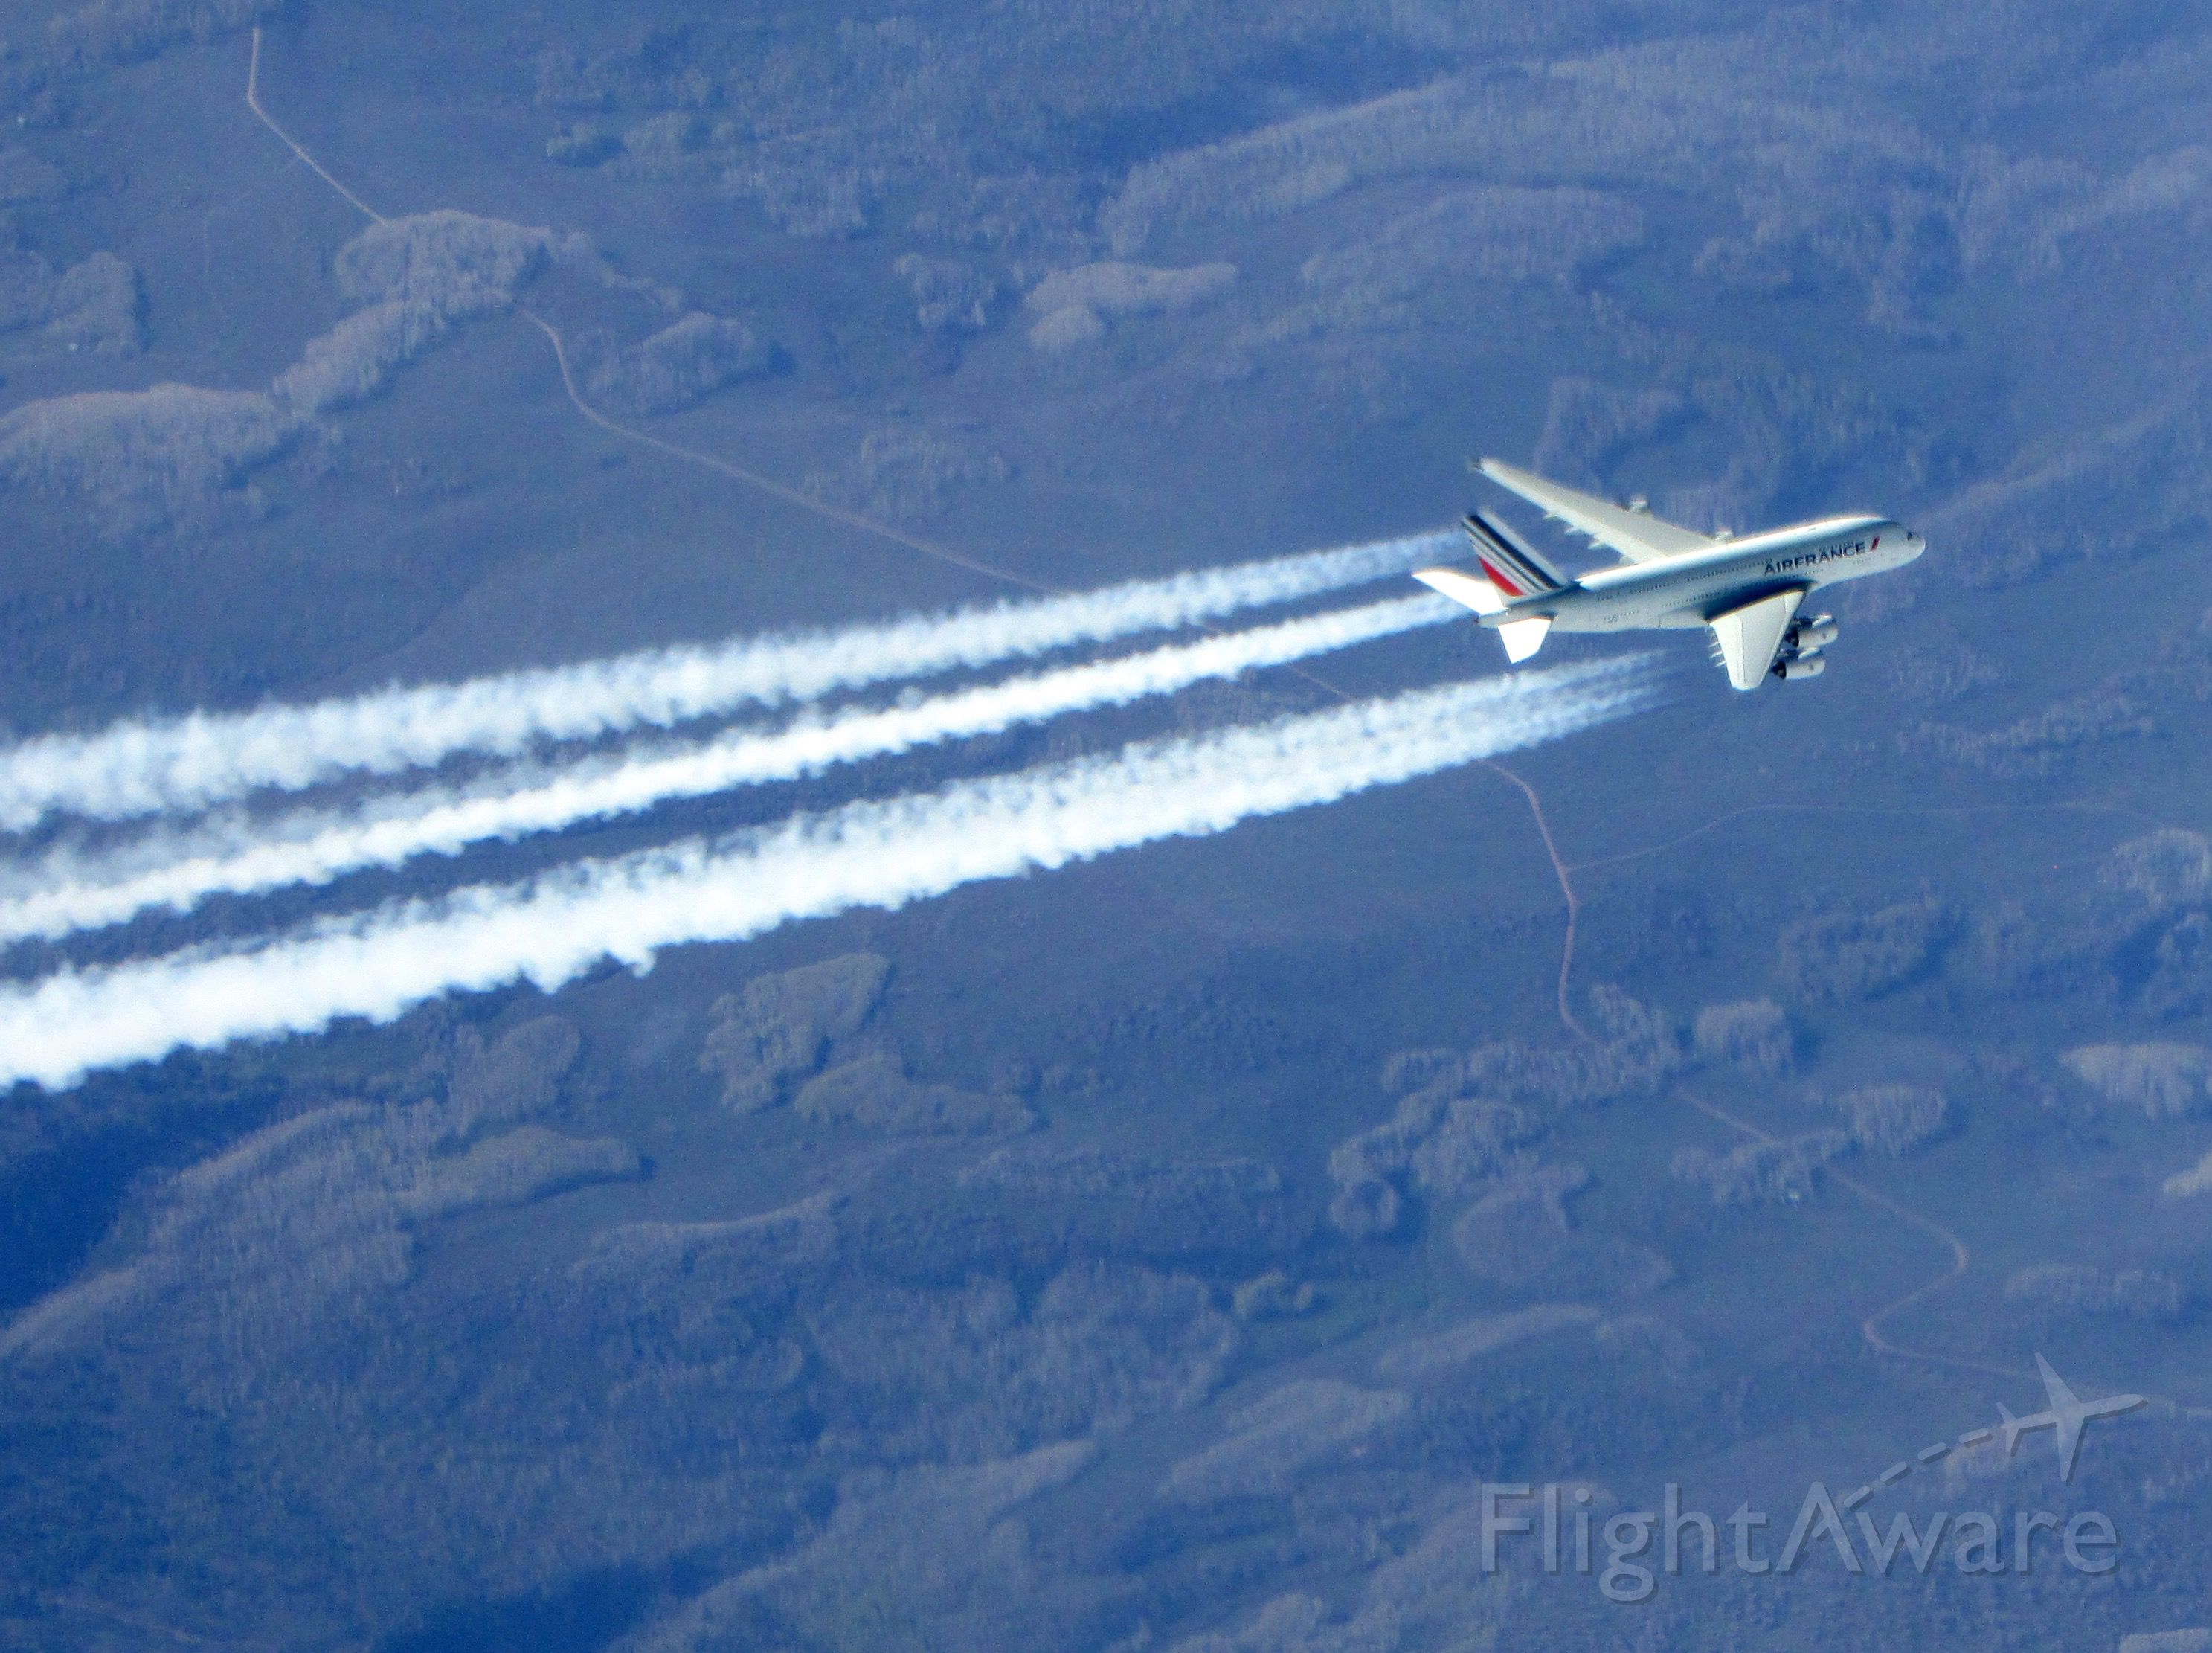 Airbus A380-800 (AFR65) - We captured this picture while overtaking this Air France A380 over Utah.  We were at FL410, they were at FL370.  AFR065, departed LAX to LFPG.